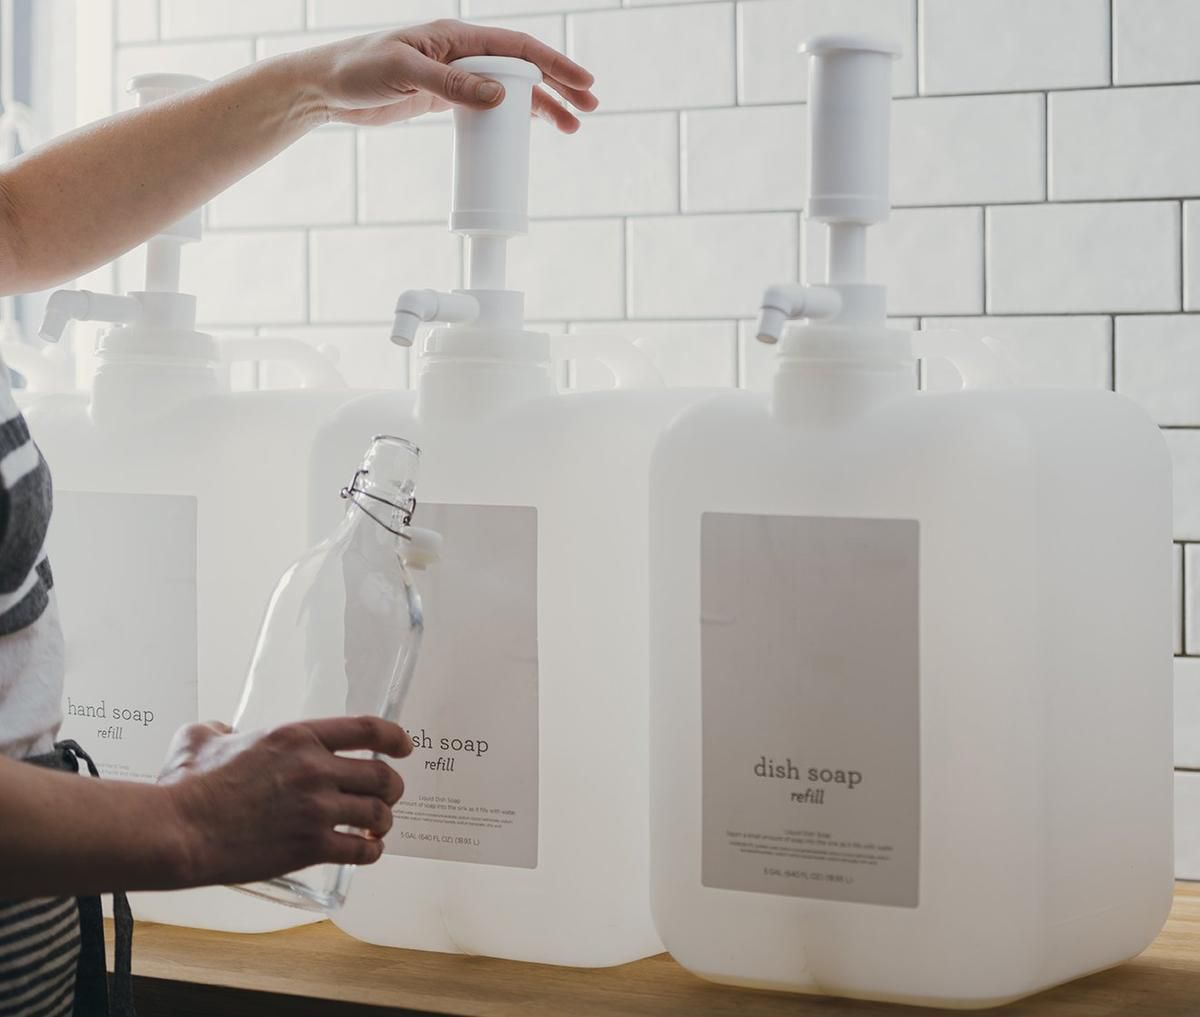 Calgary S Only Dedicated Zero Waste Shop Looks To Meet Growing Demand For Eco Friendly Products Zero Waste Store Zero Waste Homemade Cleaning Products